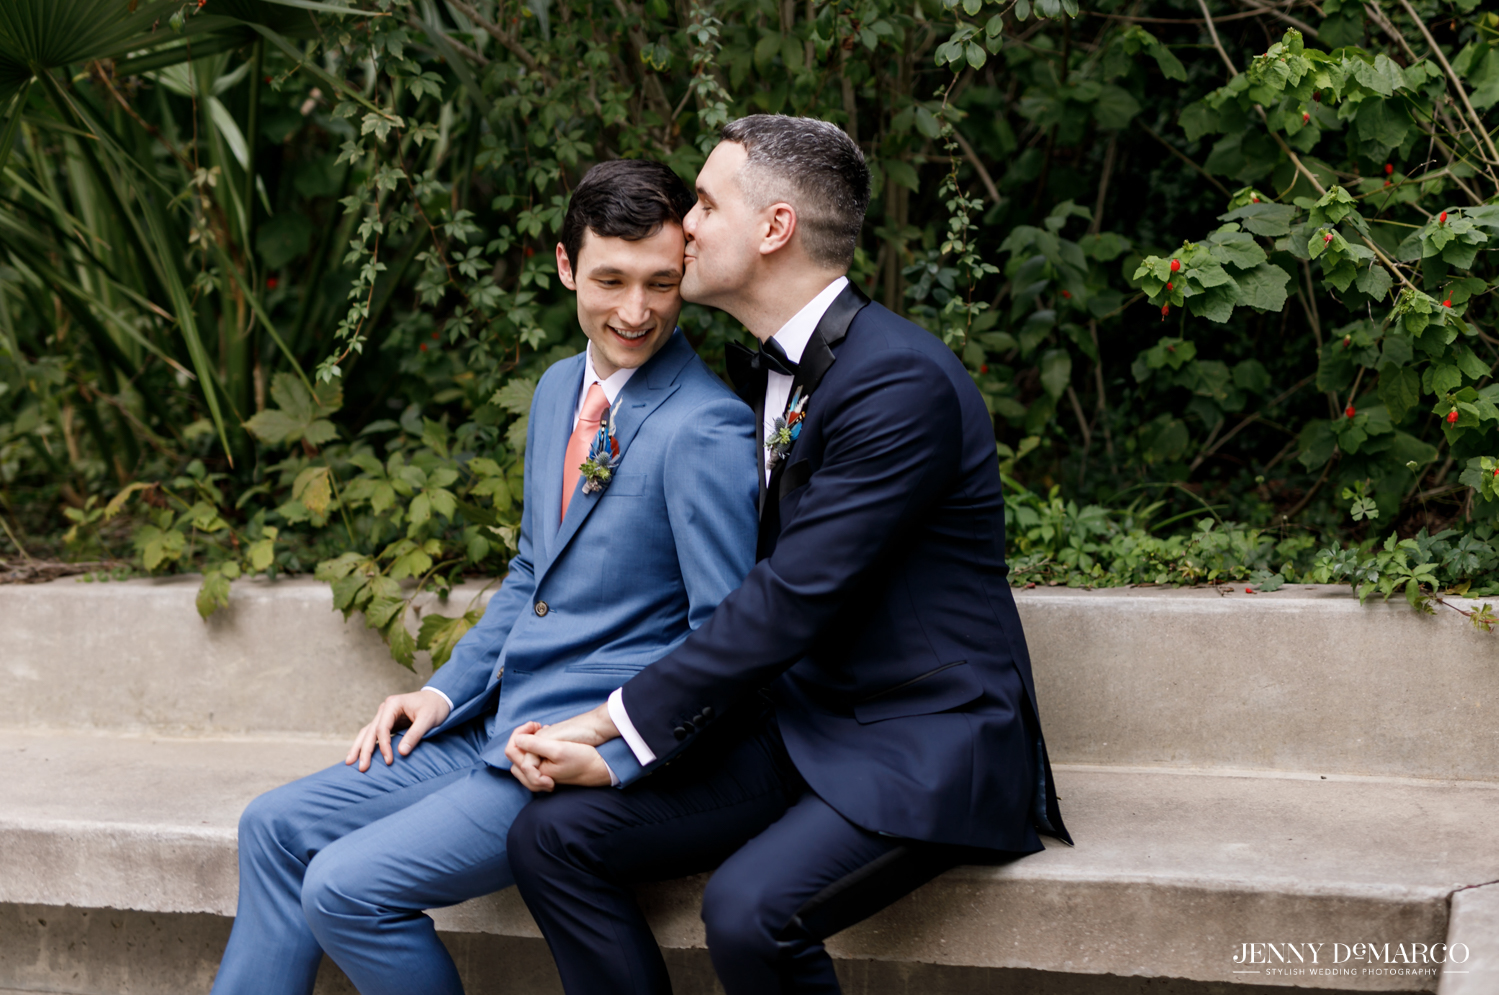 Grooms sitting on bench while groom on right kisses the forehead of the groom on left